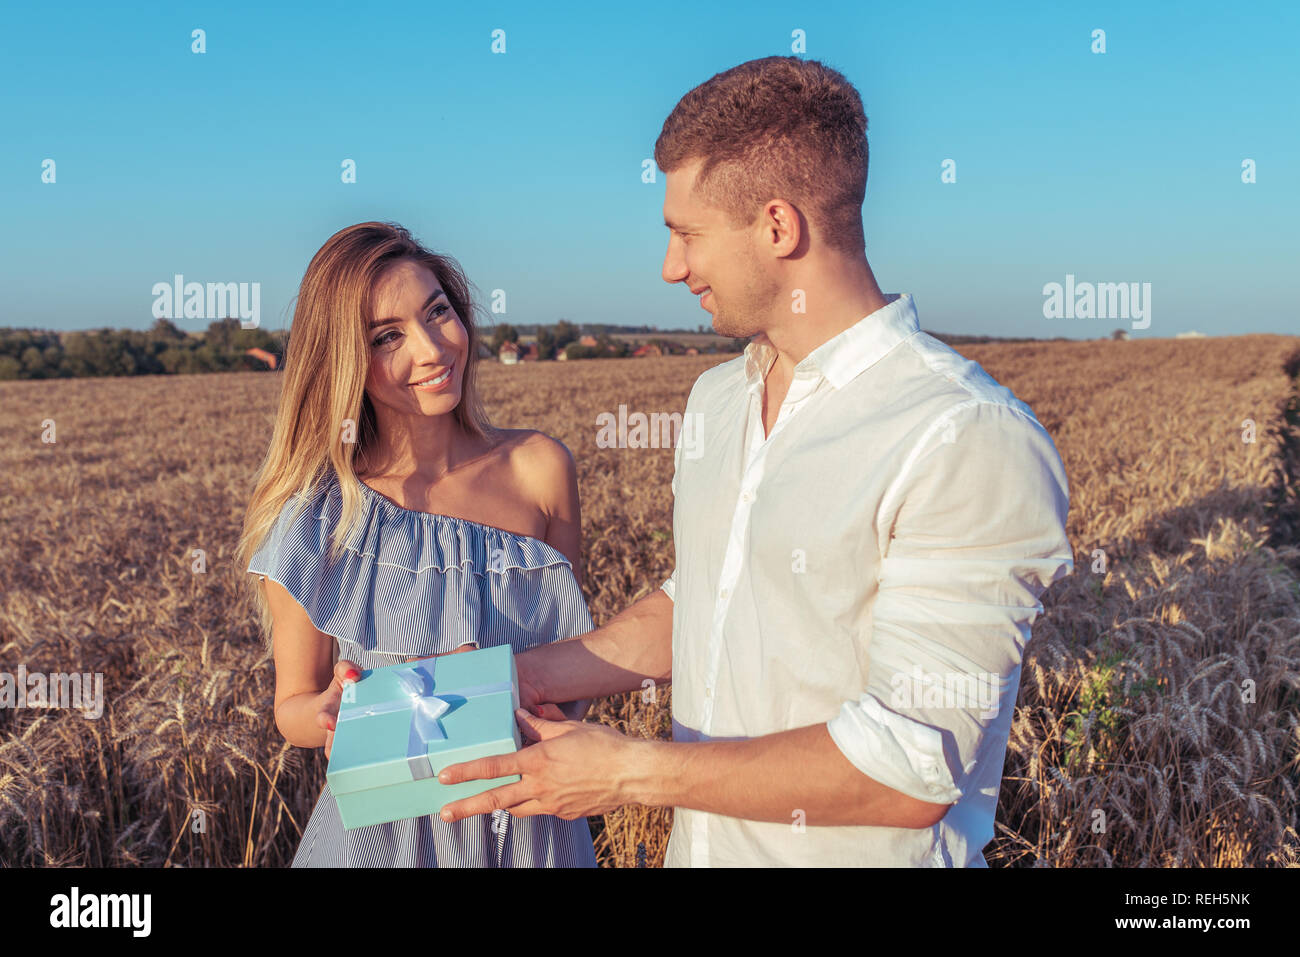 Happy young couple man and woman, adult romantic family. There is sunset in wheat field. Happy smile The guy gives the girl a gift, a bowl box. Concept of happiness, unexpected delight and pleasure. - Stock Image